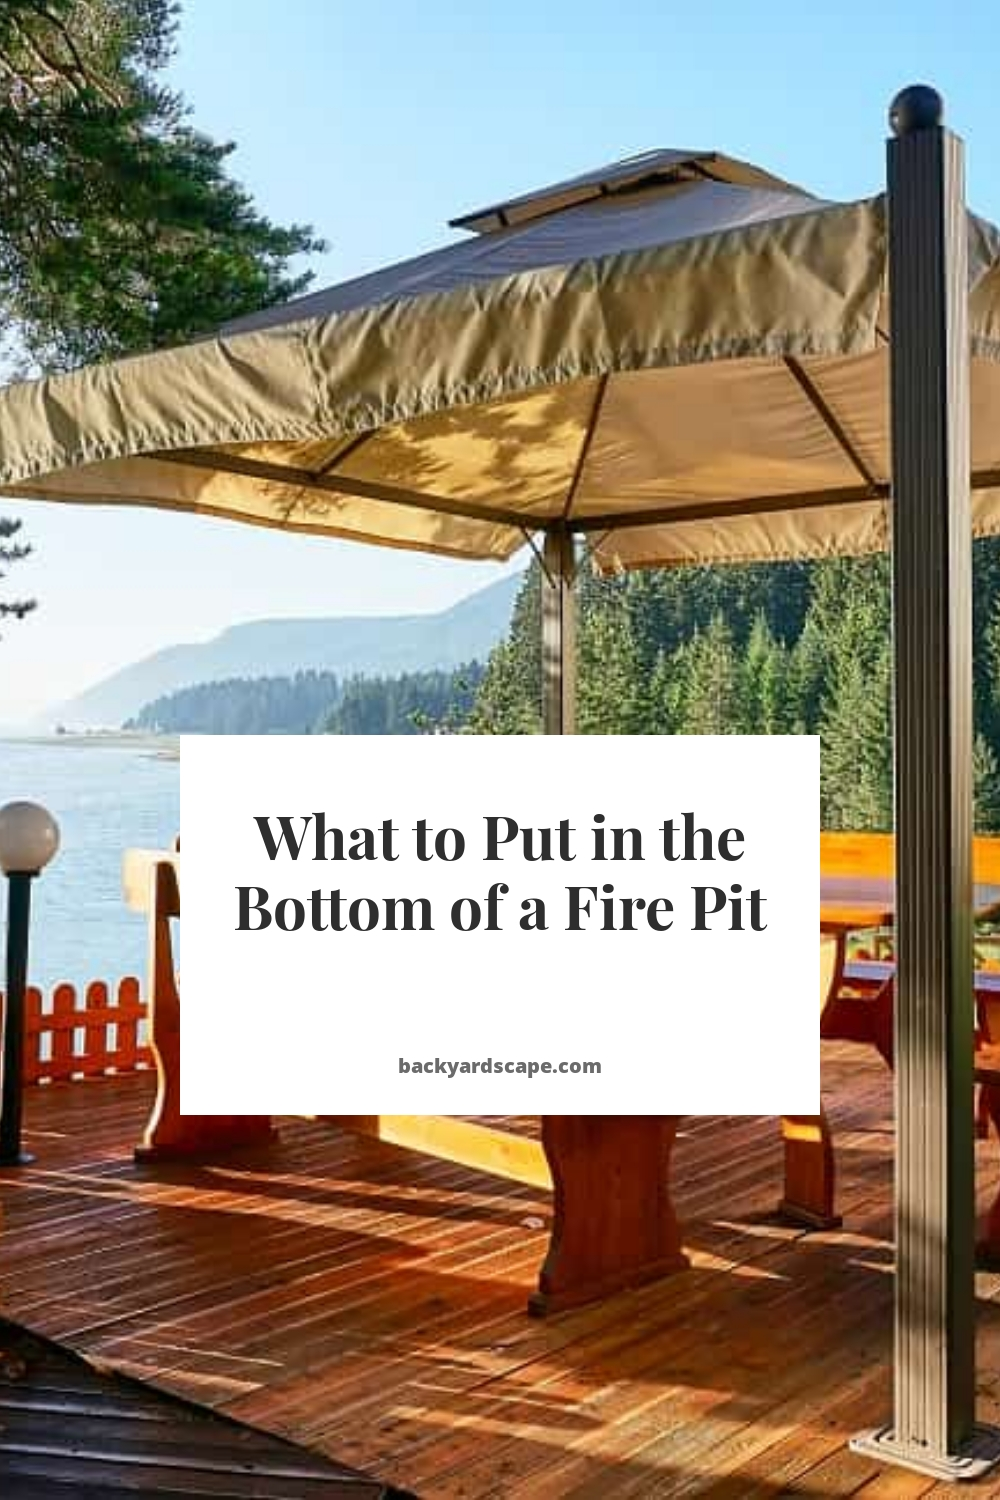 What to Put in the Bottom of a Fire Pit